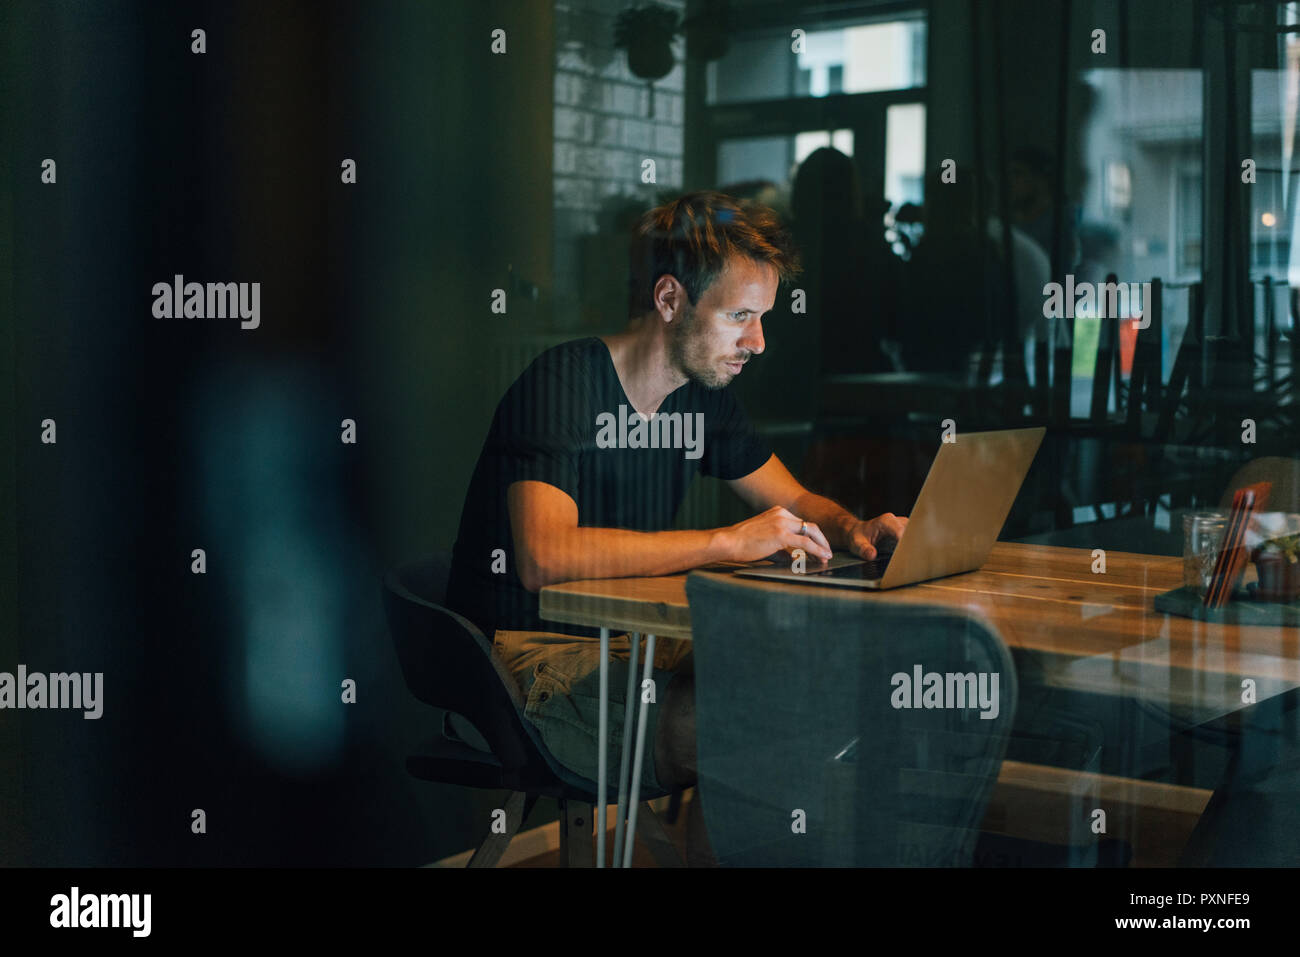 Man sitting in office, working late in his start-up company - Stock Image